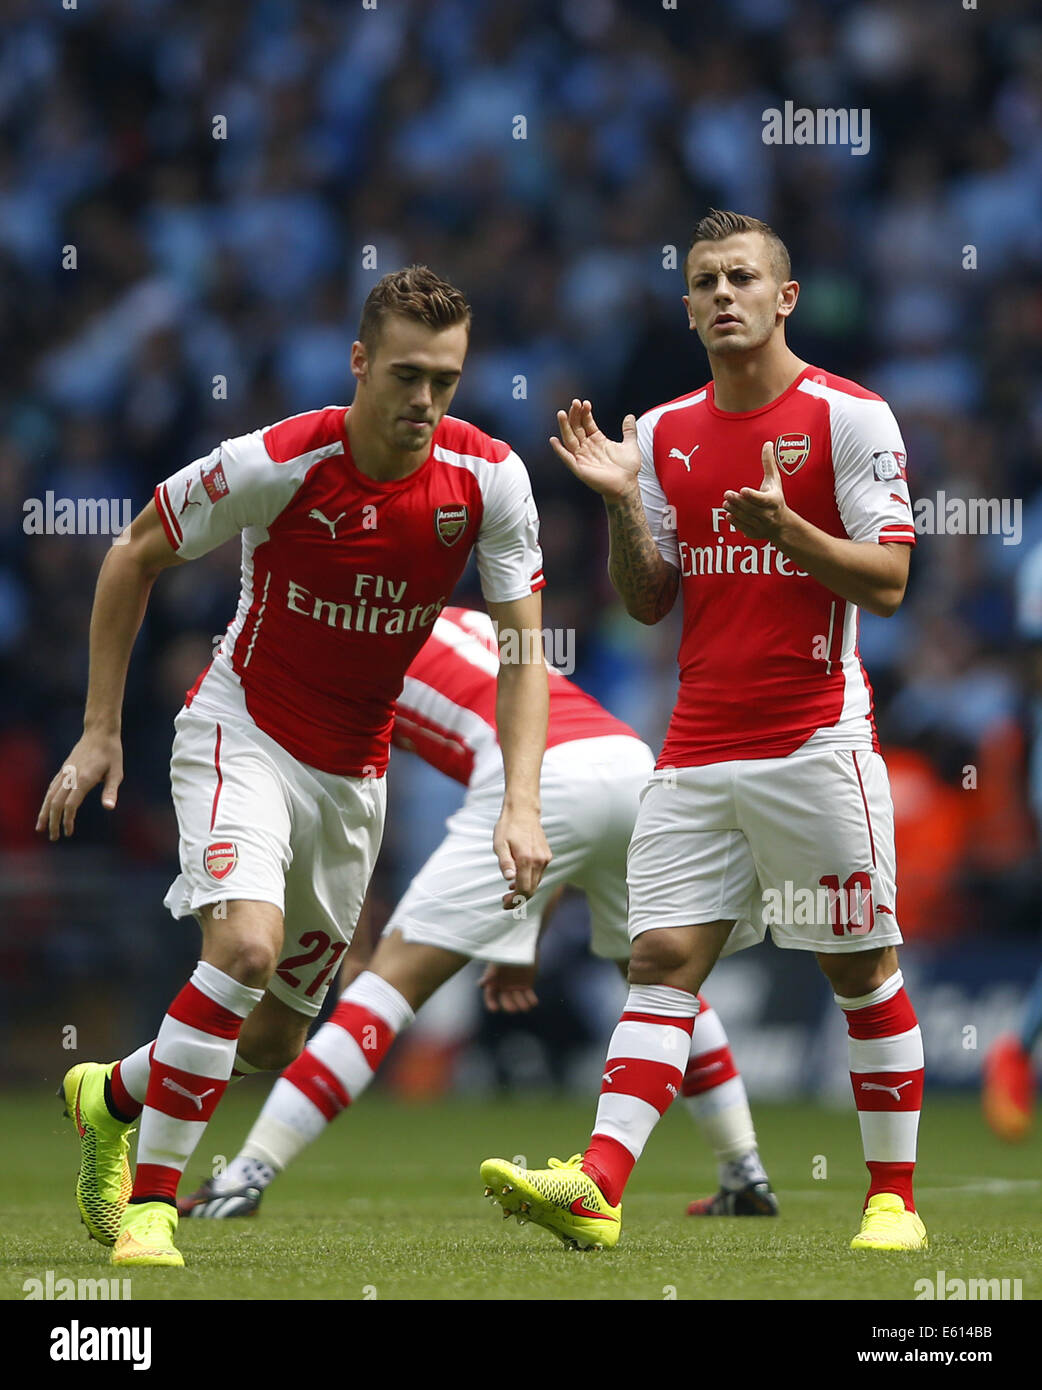 London, UK. 10th Aug, 2014. Jack Wilshere (R)of Arsenal looks on ahead of the Community Shield match between Arsenal - Stock Image